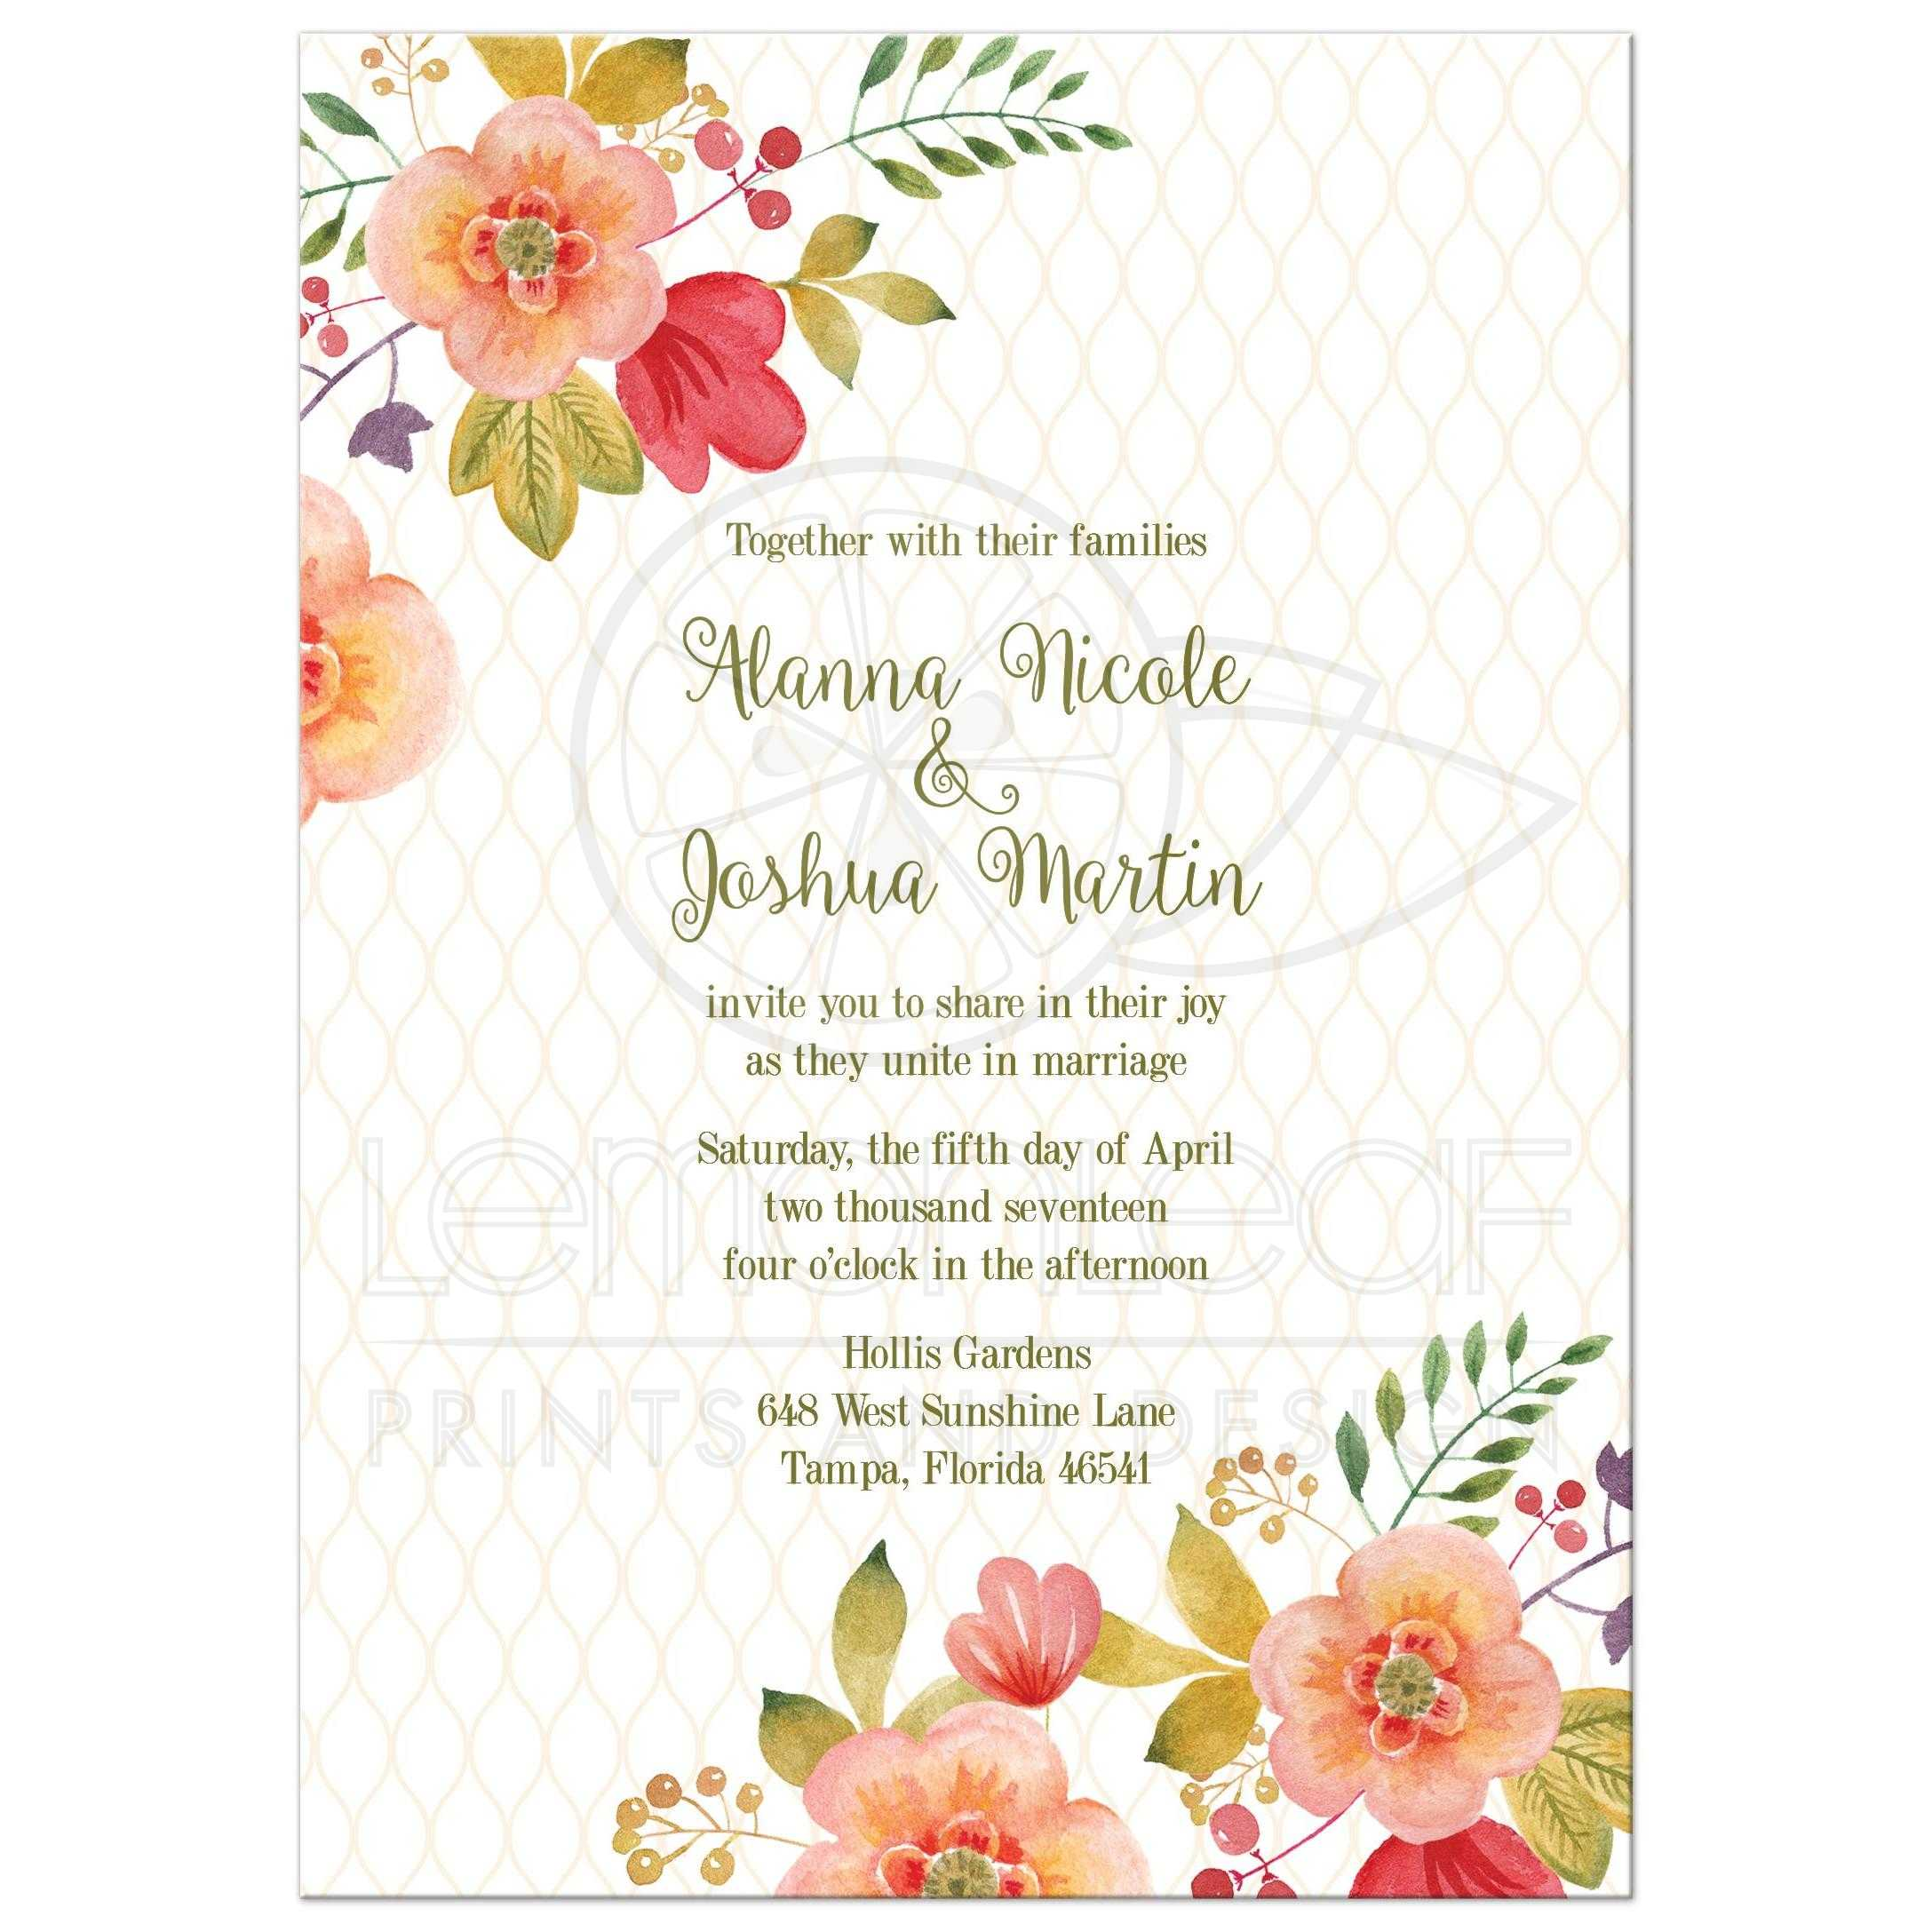 Floral Wedding Invitation - Olive Green and Pink Watercolor Flowers